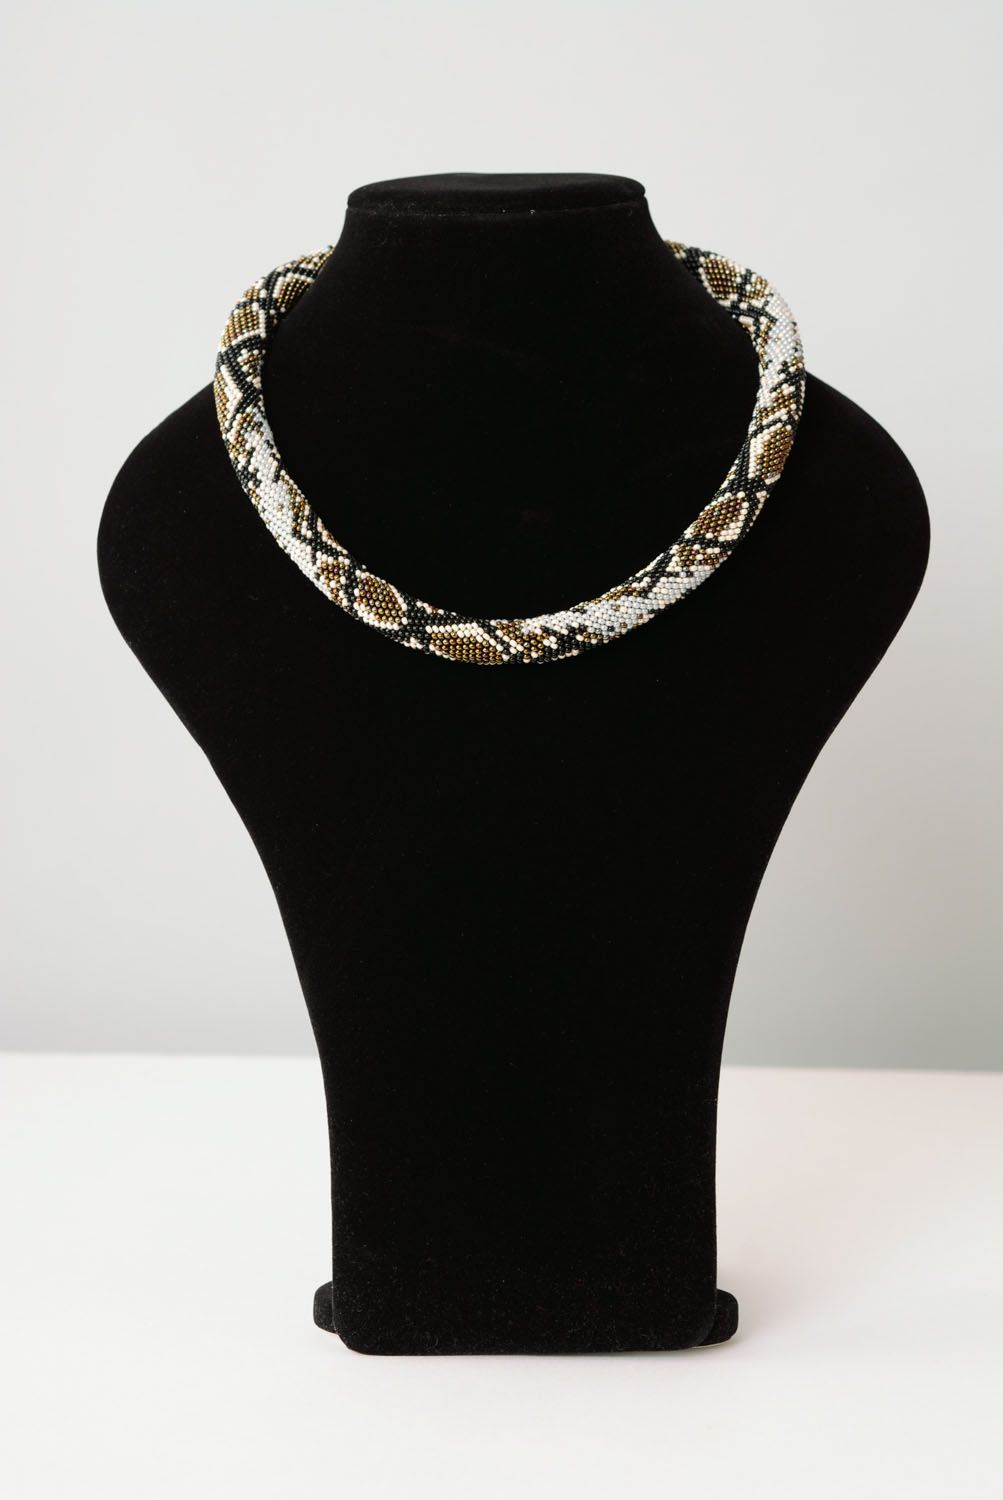 Beaded cord with python skin pattern photo 1